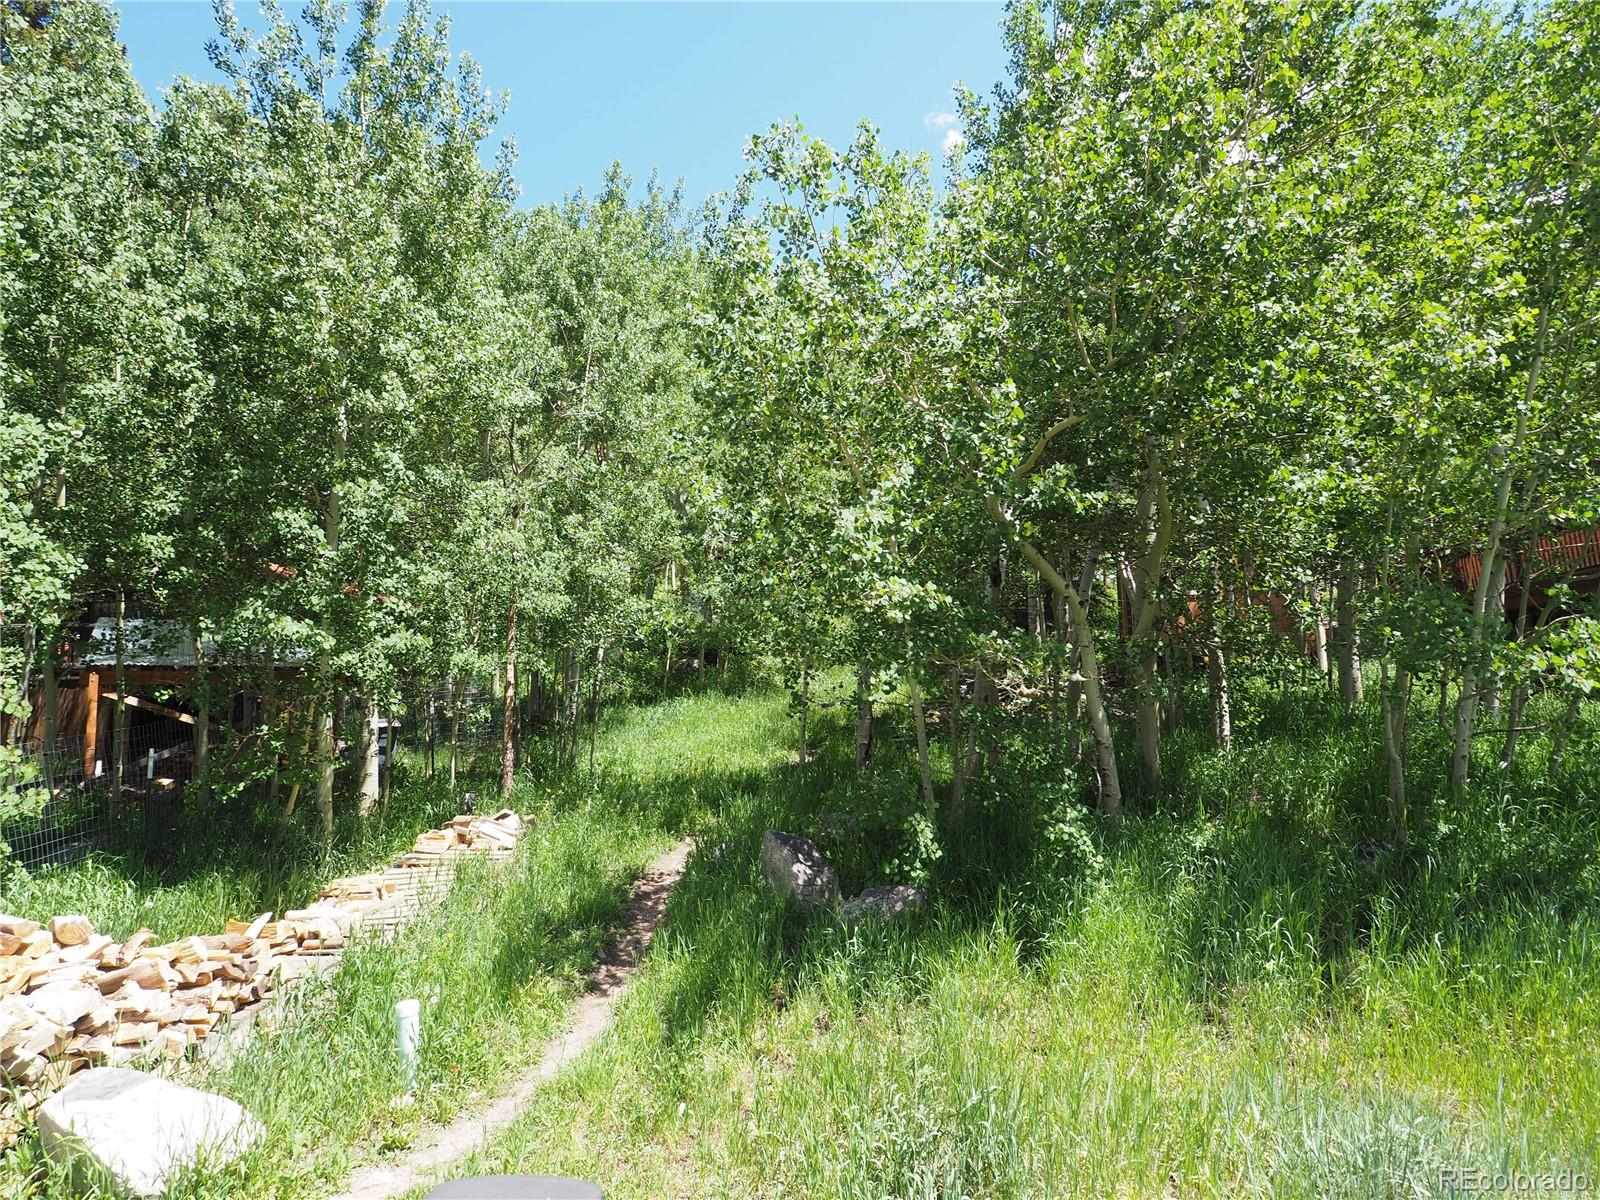 MLS# 8404962 - 10 - 566 Washington Avenue, Nederland, CO 80466